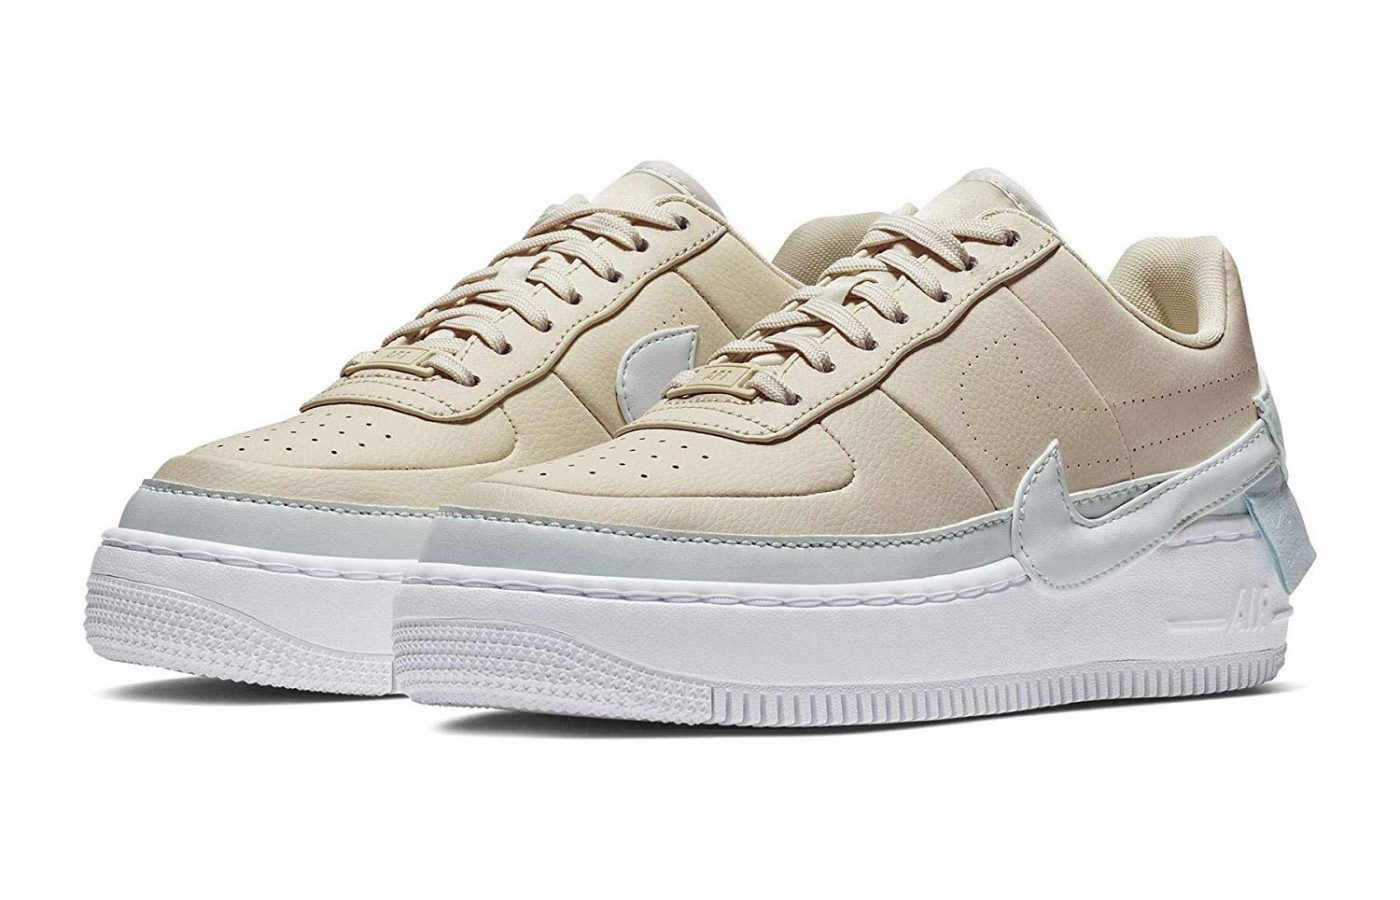 Rock bottom Prices Nike Air Force 2019 Air Force 1 Premium